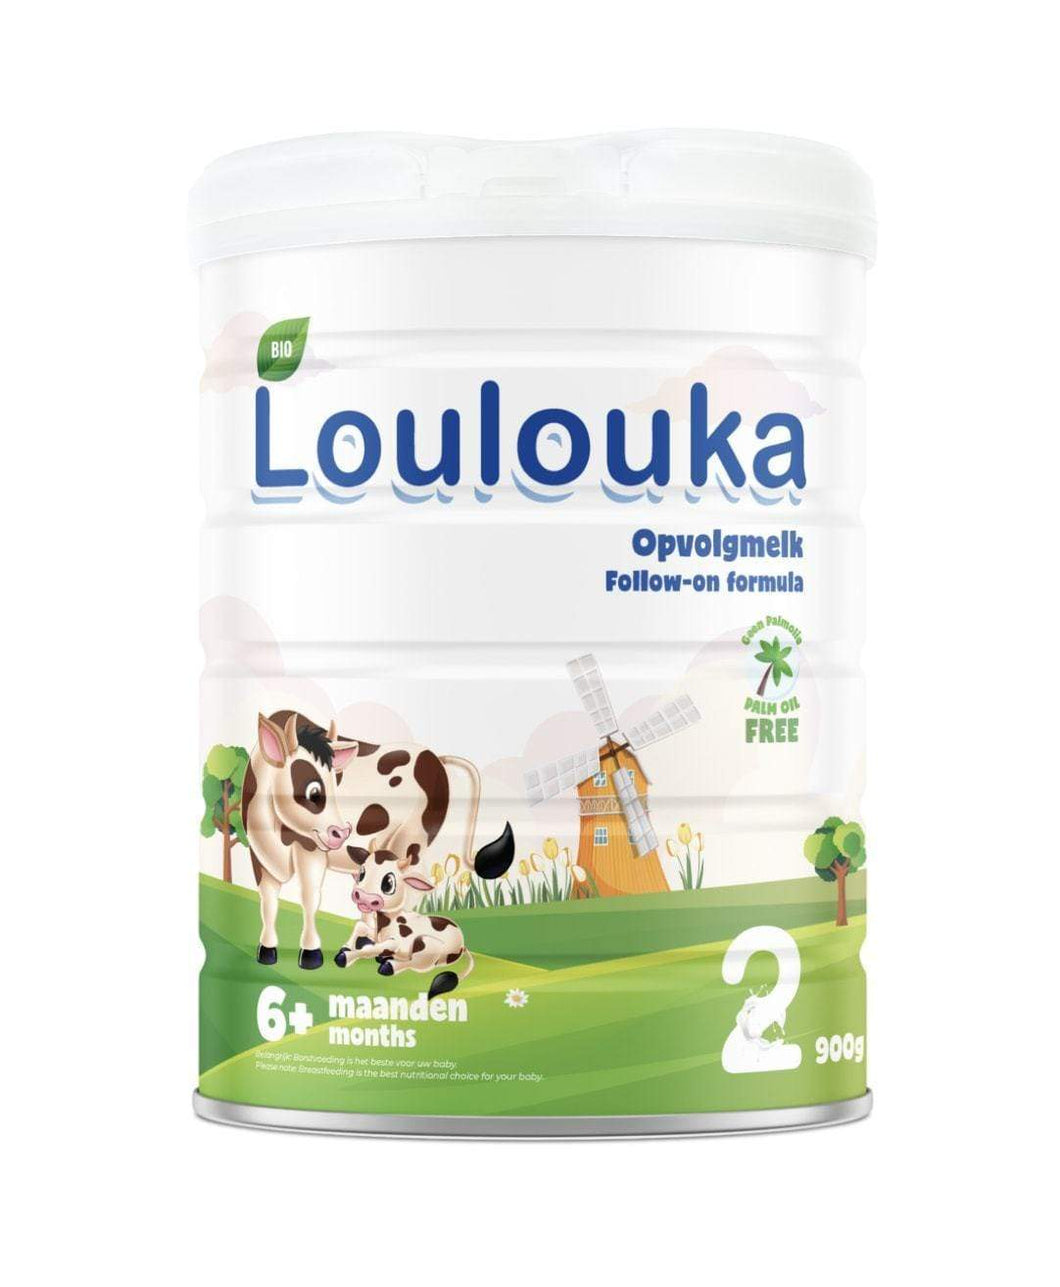 Loulouka Stage 2 Organic (Bio) Follow-on Infant Baby Milk with DHA (900g) Formula